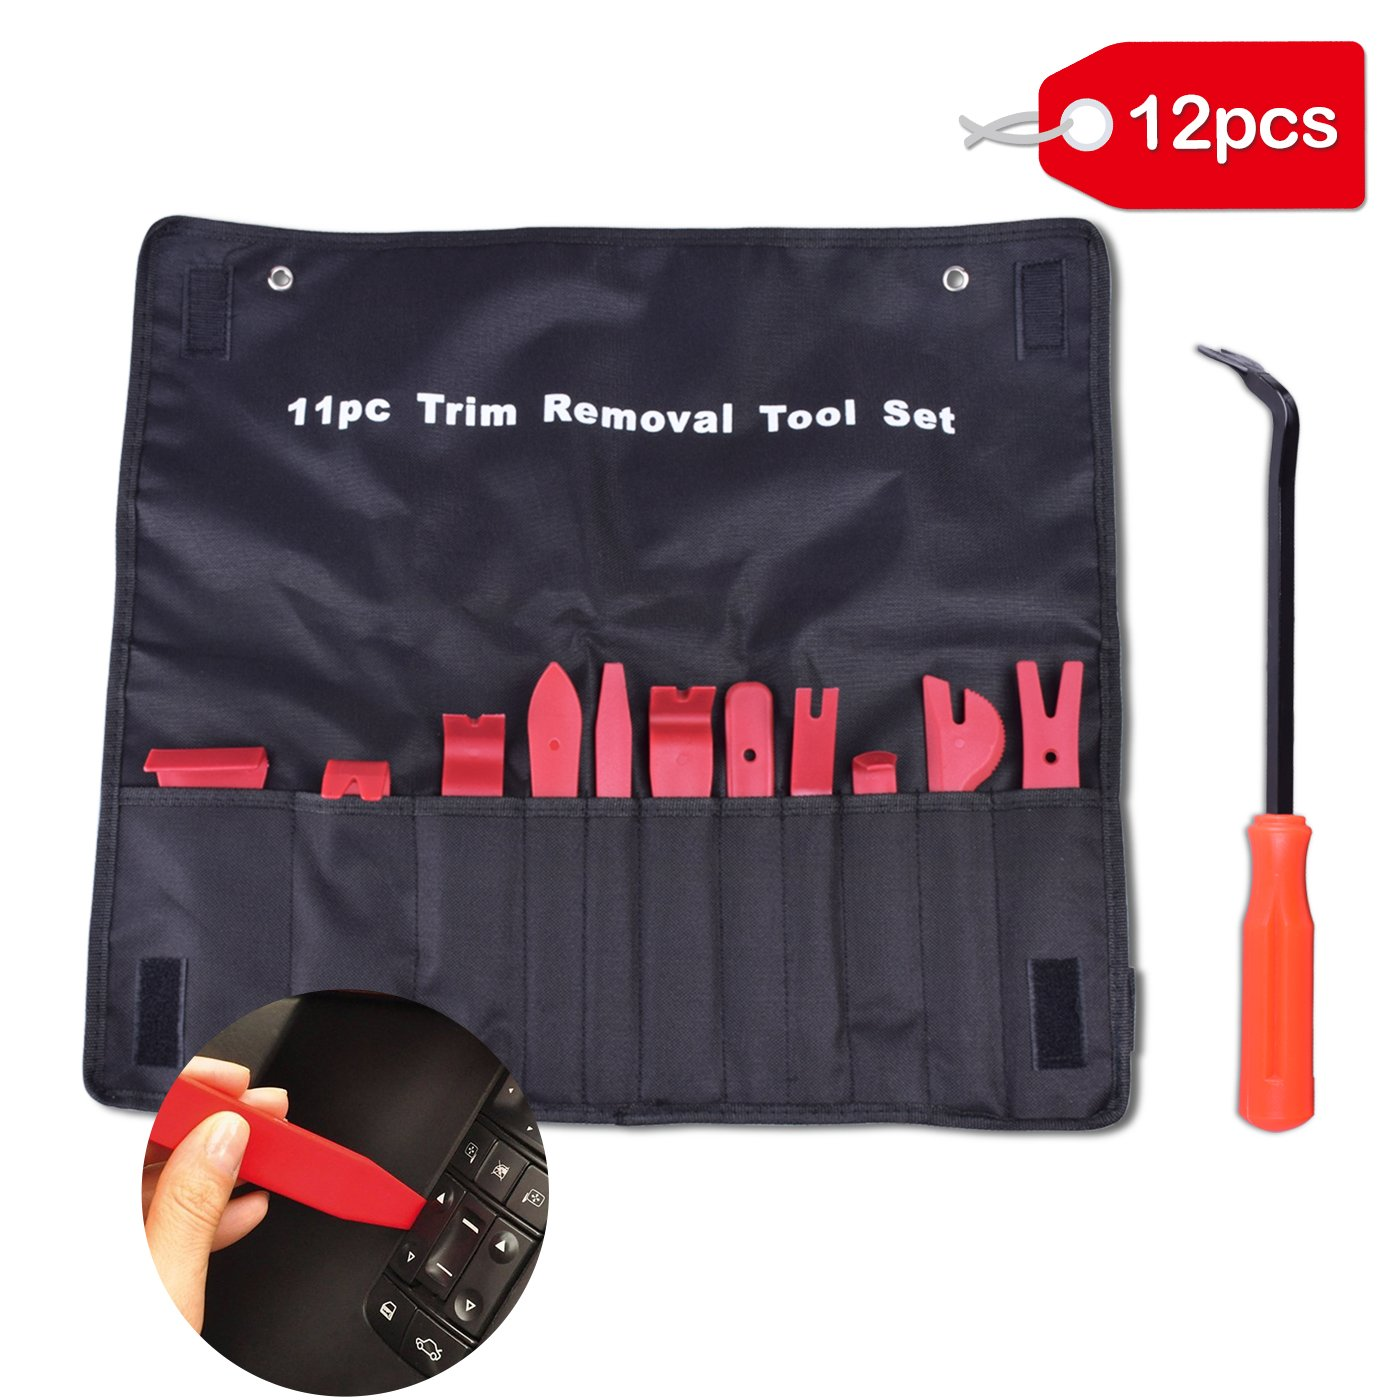 MINLUK Trim Removal Tool, 12PCS Auto Trim Removal Pry Tool Set Kit Interior DIY with Fastener Remover for Car Auto Window Door Panel Molding Radio Audio Repair and Install